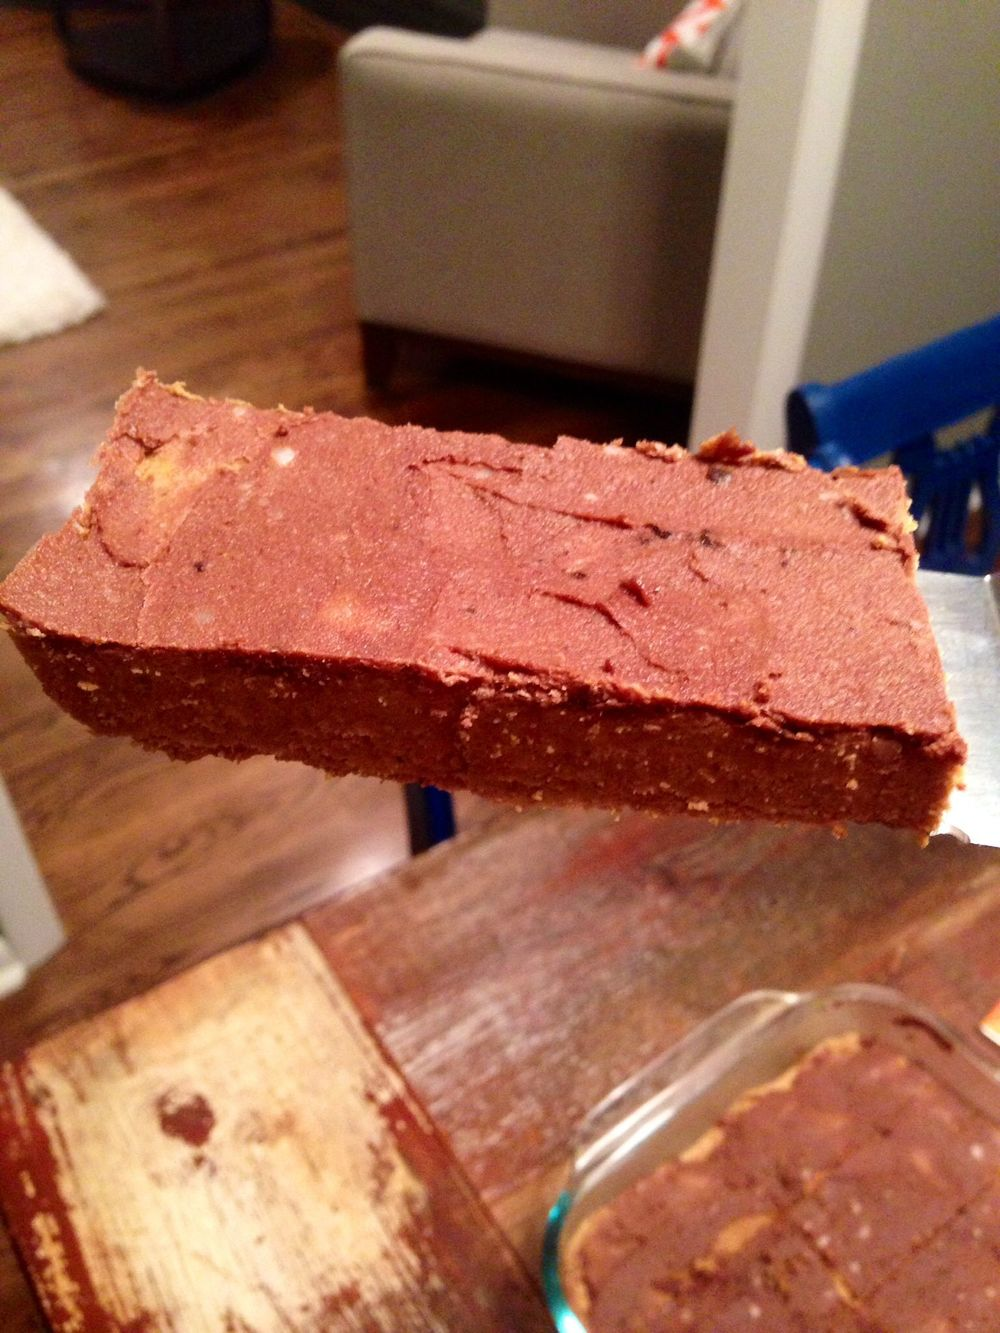 Recipe: Pumpkin Protein Bars (with Chocolate Frosting!) from Balance in the 'Burbs. Vegan. Gluten-free. Delicious.